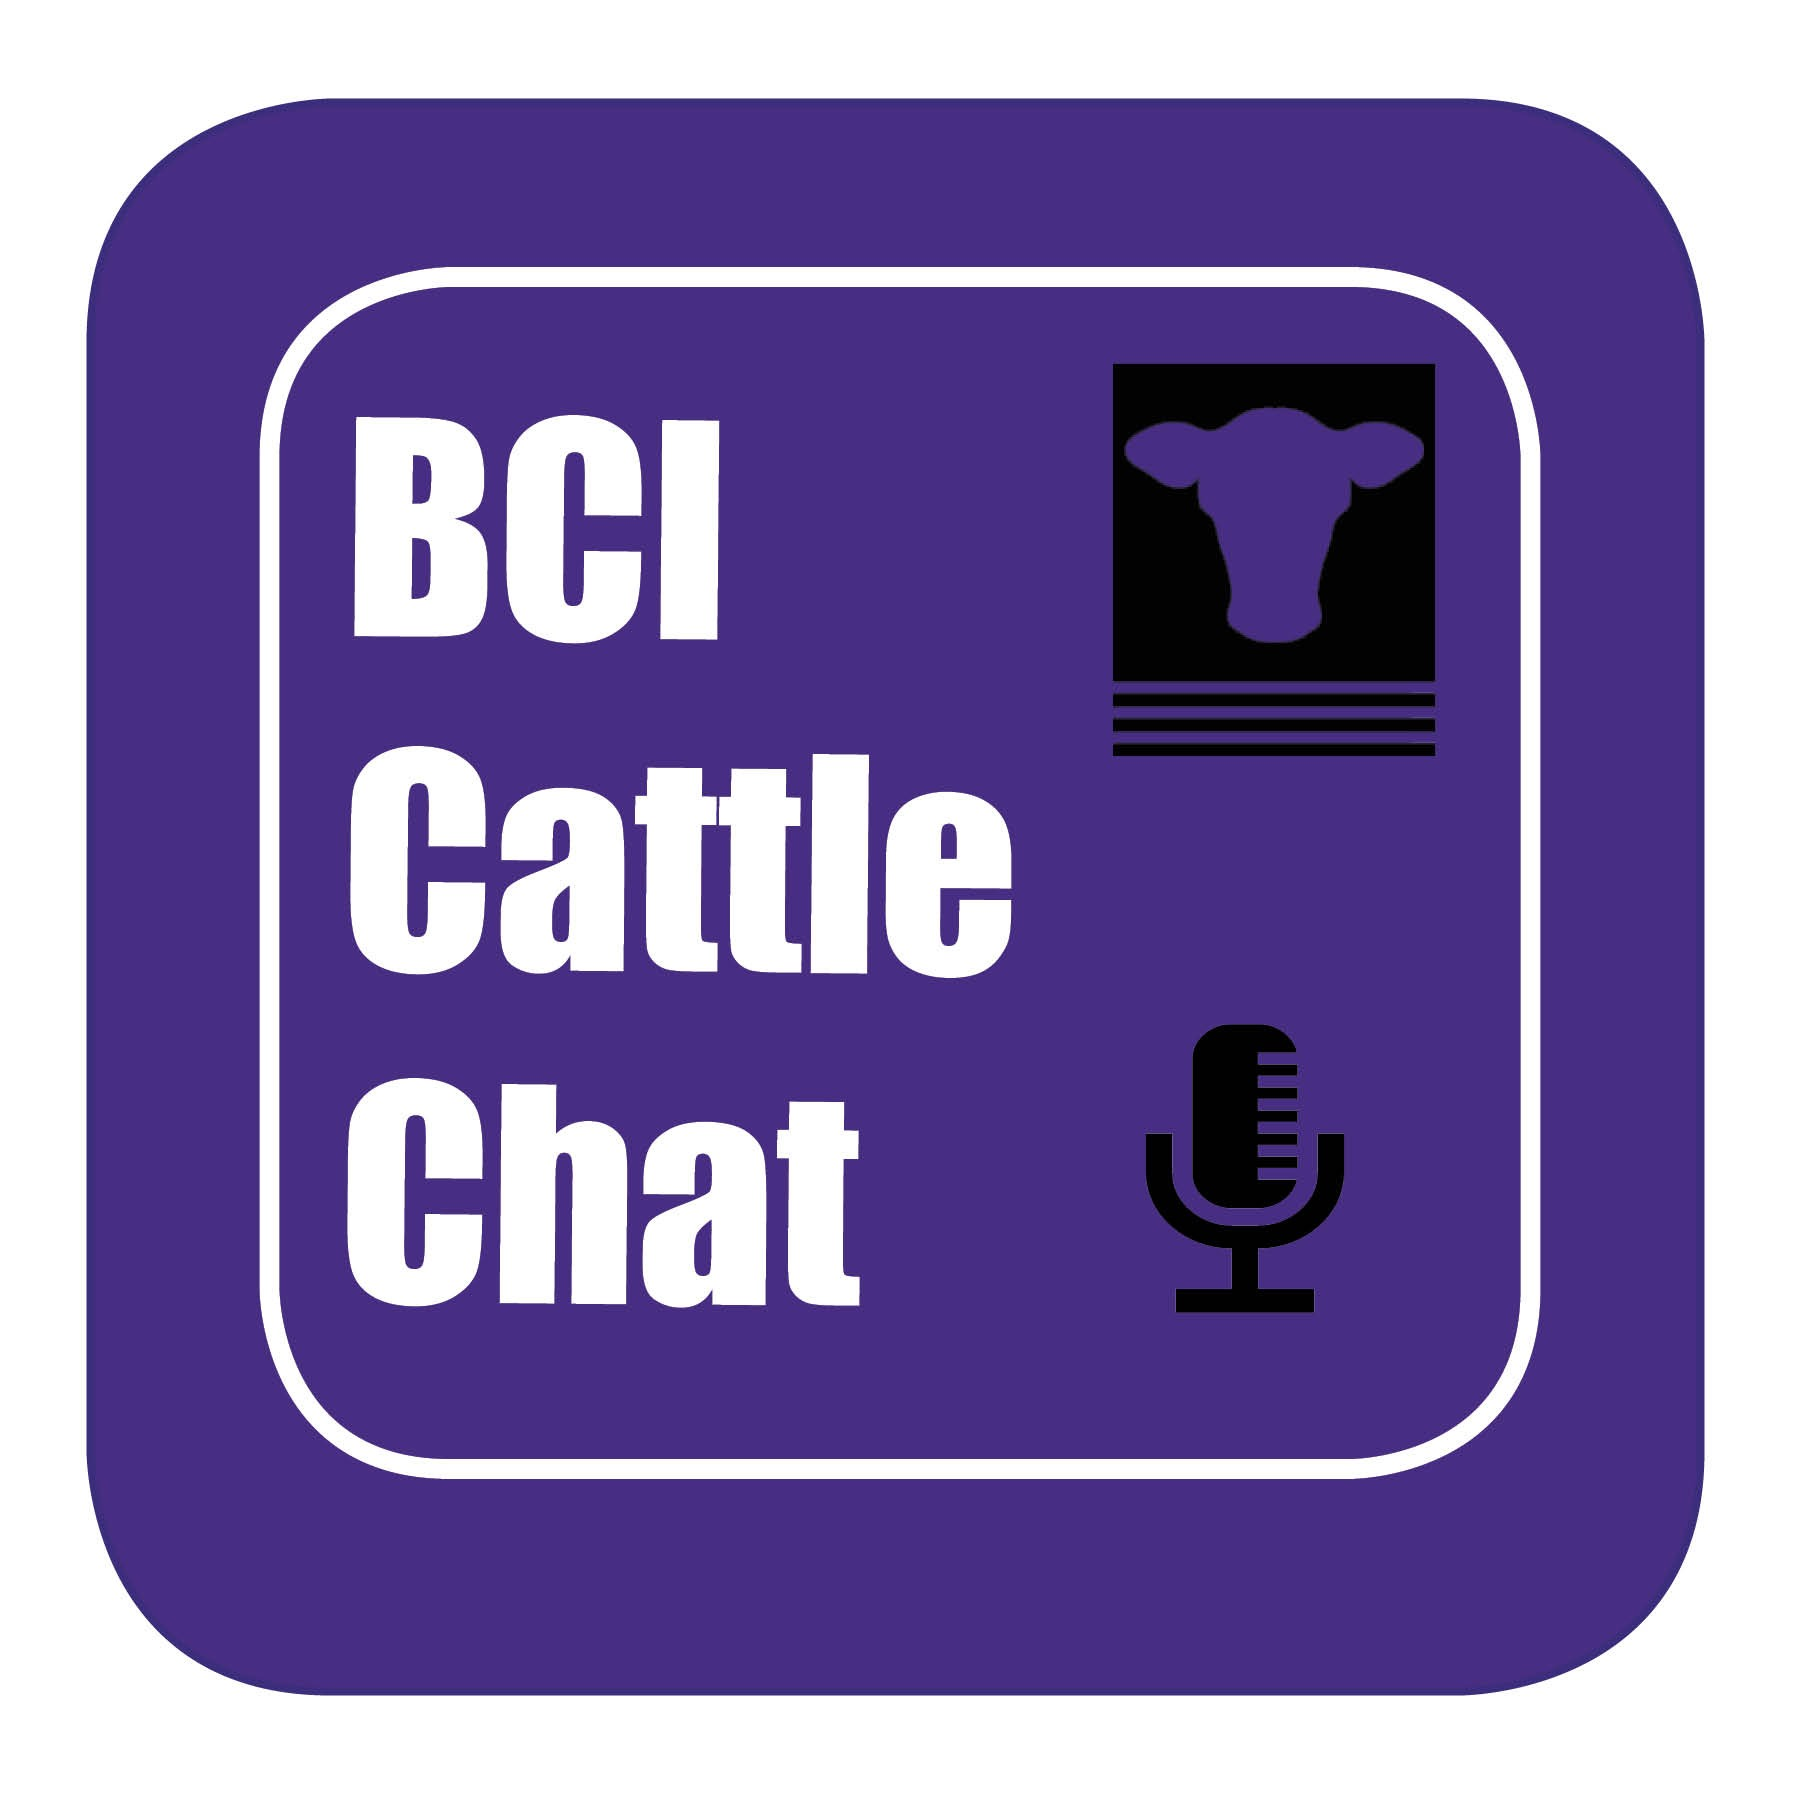 BCI Cattle Chat - Episode 33